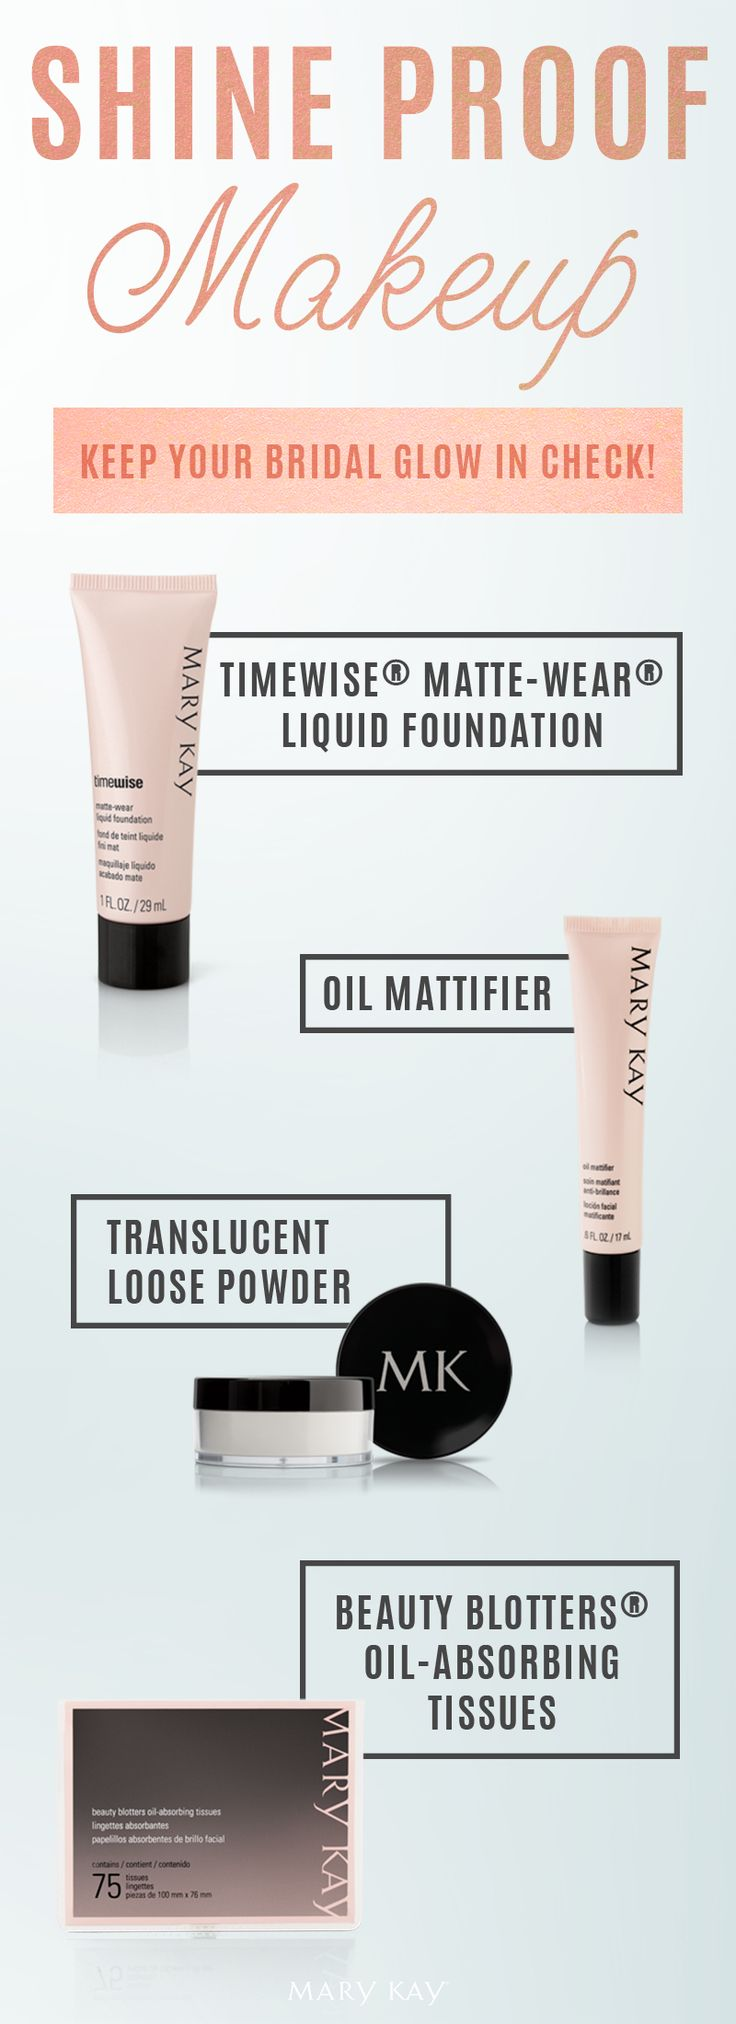 Warm nights. Nervous jitters. All-night dance party. Mary Kay® has got you covered and protected with shine-proof makeup products that will keep your bridal look in check.